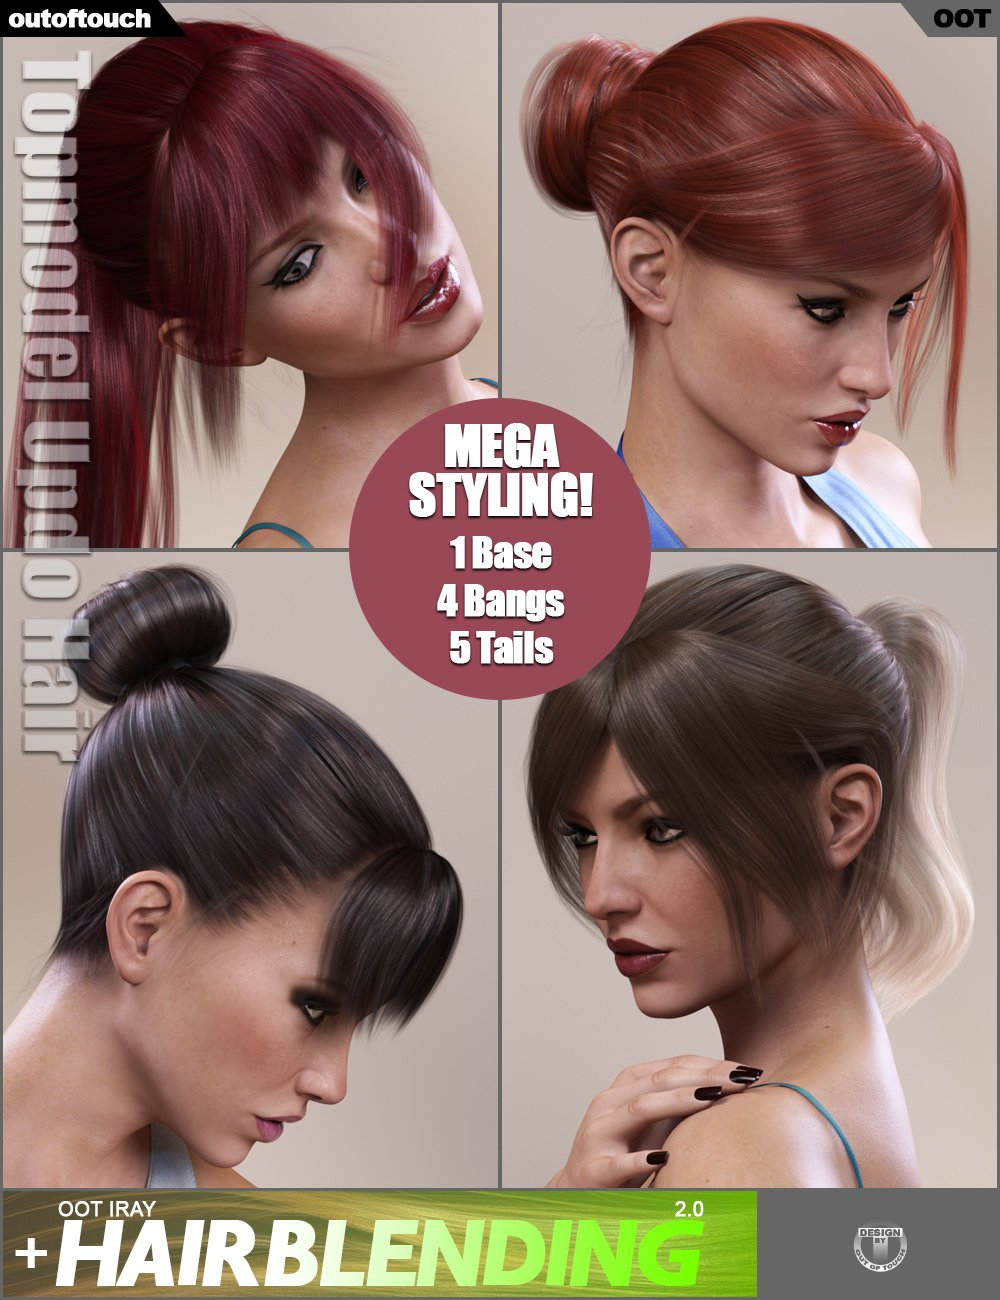 Topmodel Updo Hair and OOT Hairblending 2.0 for Genesis 3 Female(s) by: outoftouch, 3D Models by Daz 3D